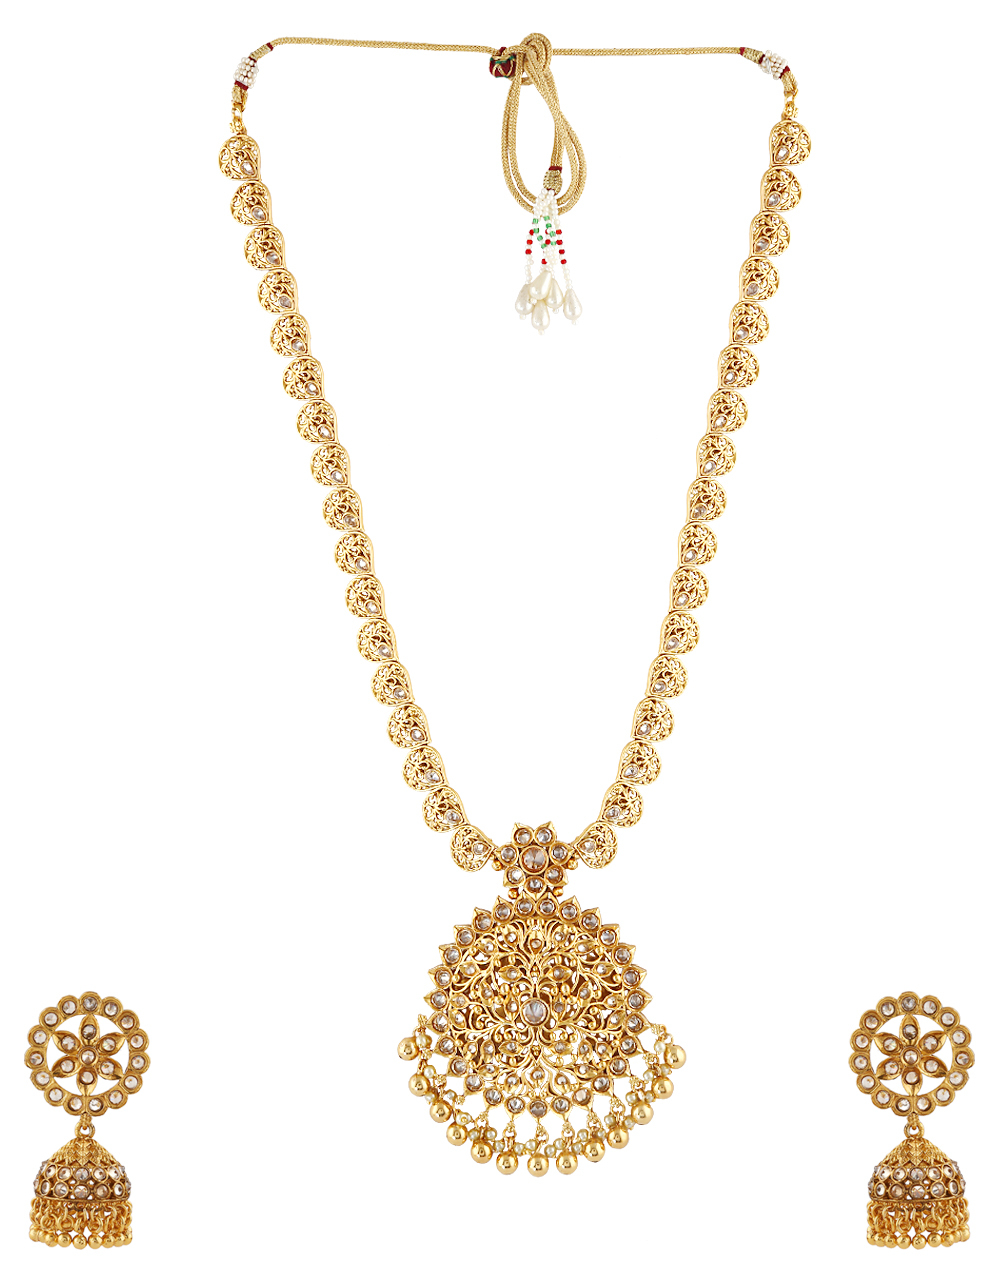 Fancy Gold Tone Necklace Studded With Stones Fancy Long Necklace